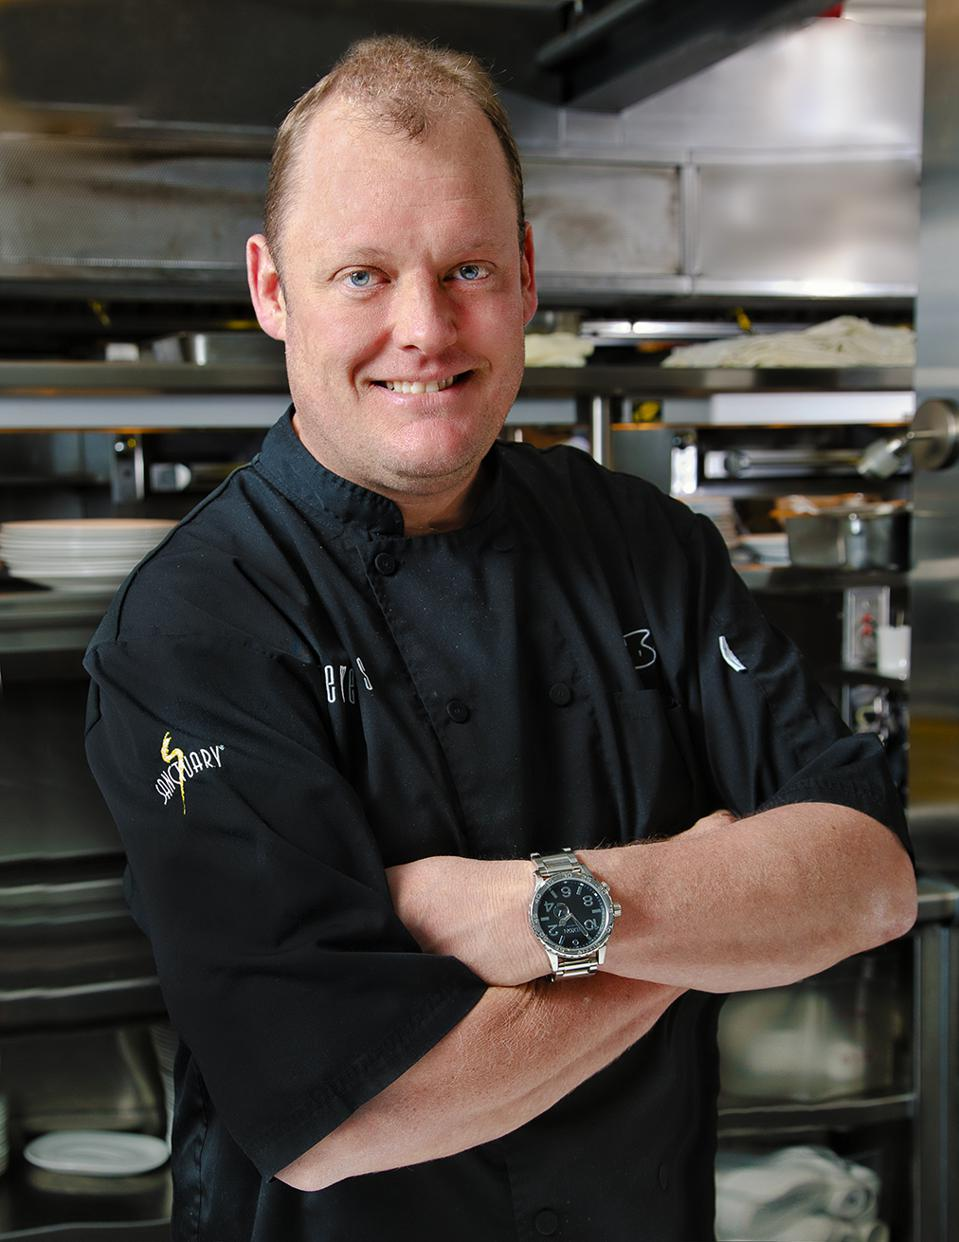 SuperStar Arizona Chef Beau MacMillan Aims for Perfection